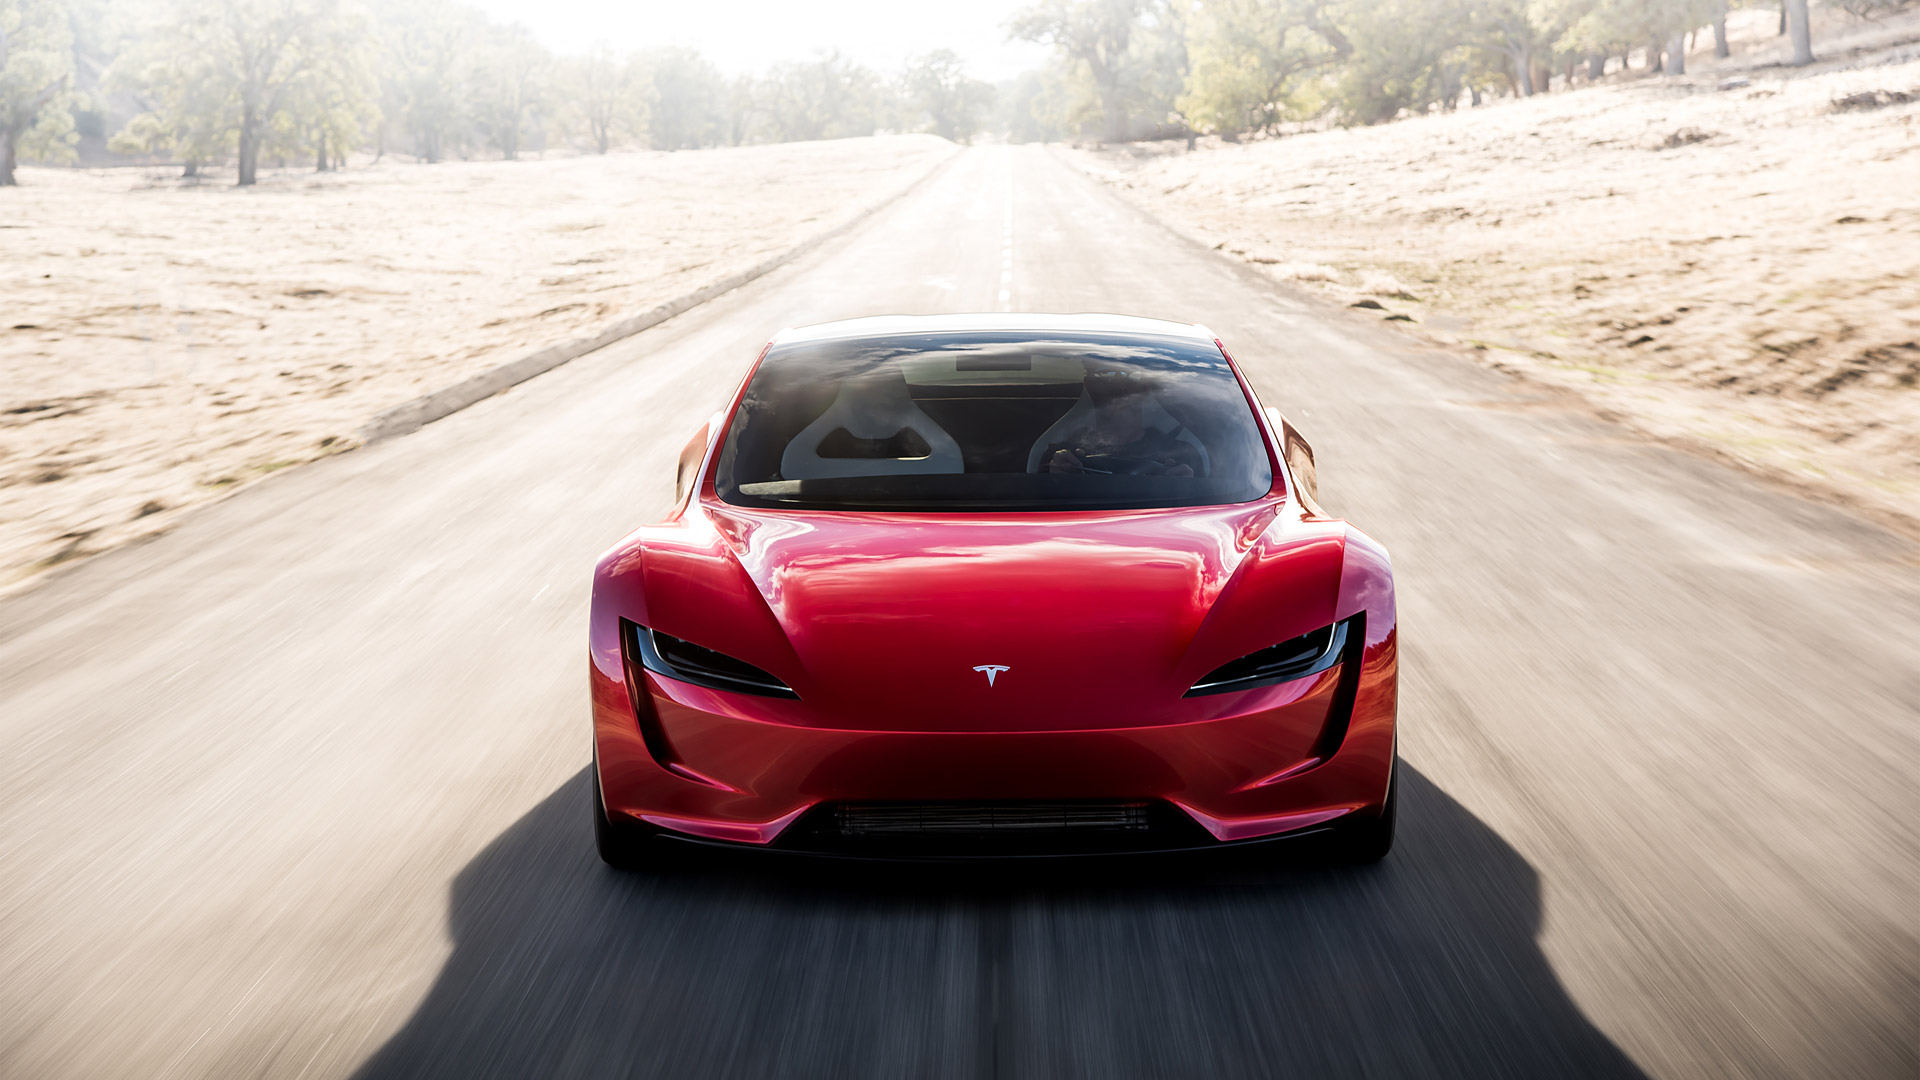 2020 Tesla Roadster Wallpapers Specs Videos   4K HD   WSupercars 1920x1080